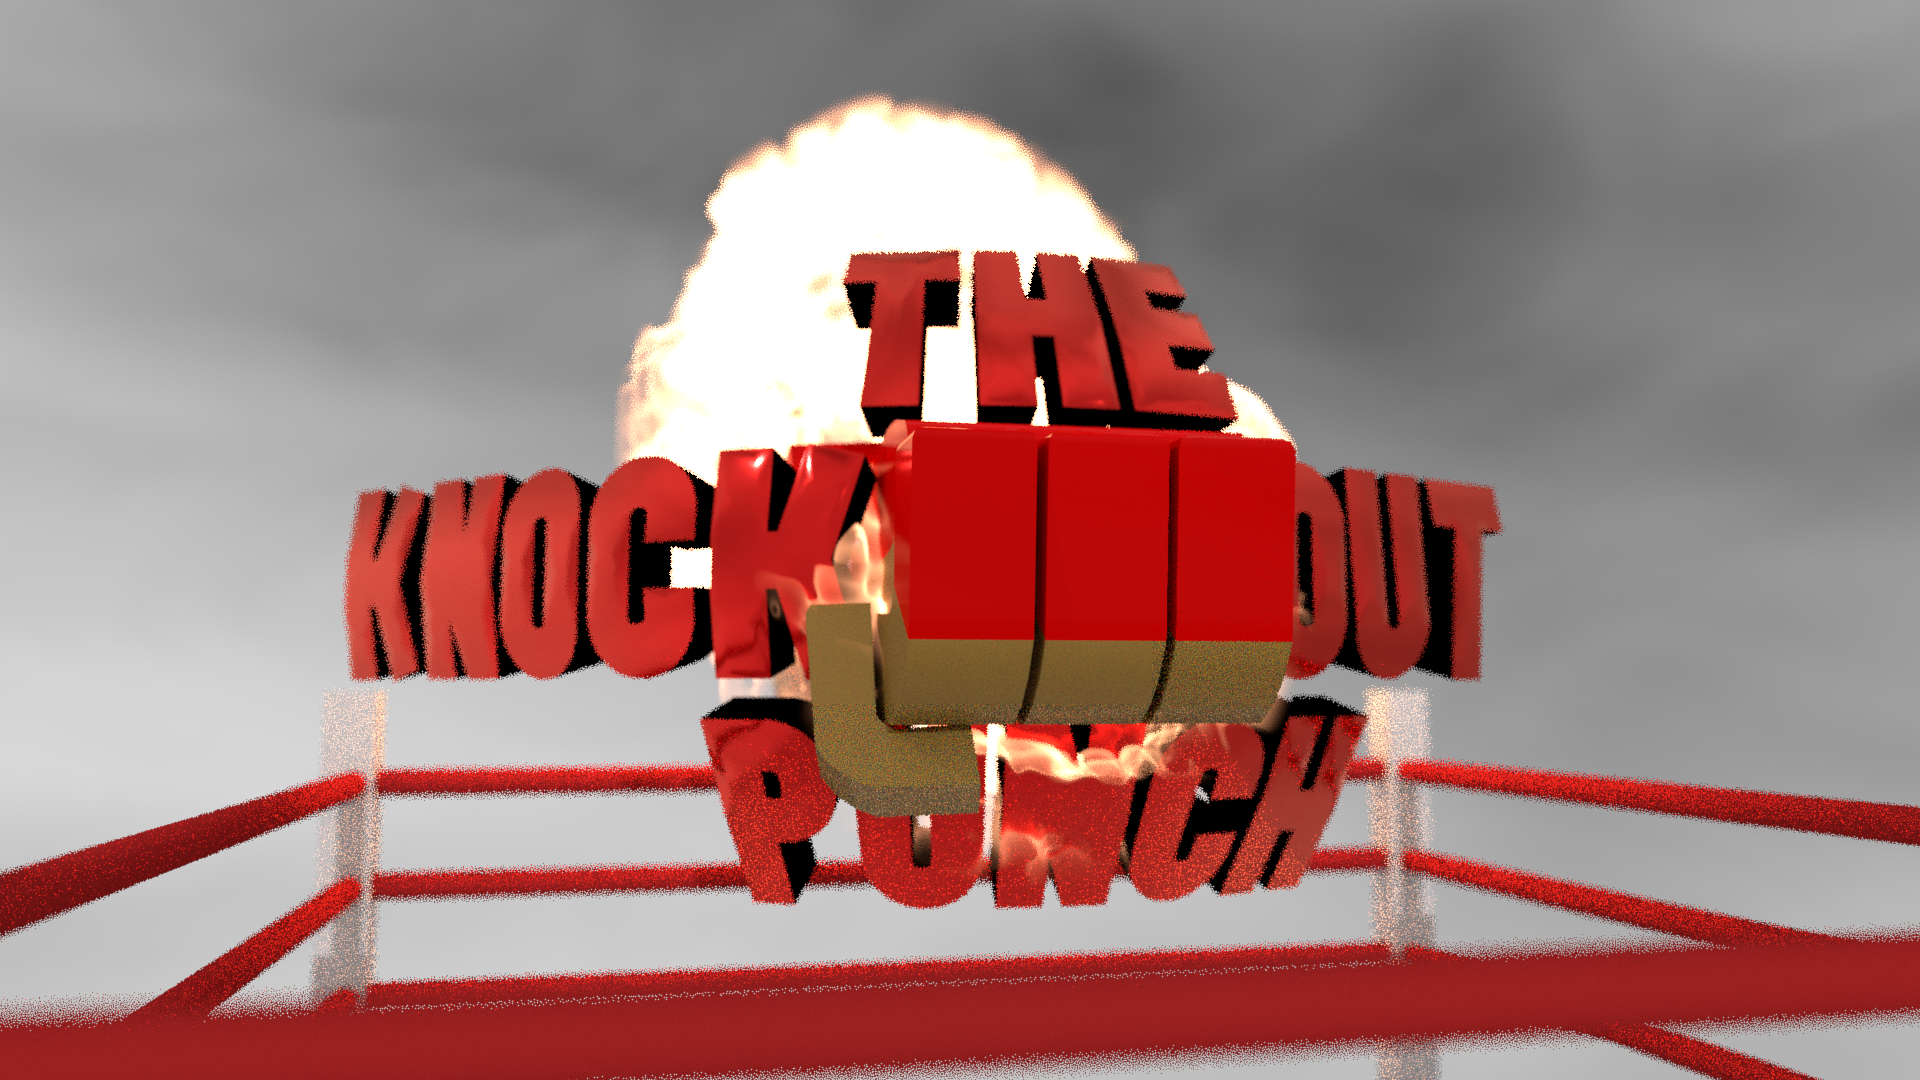 The Knock-Out Punch